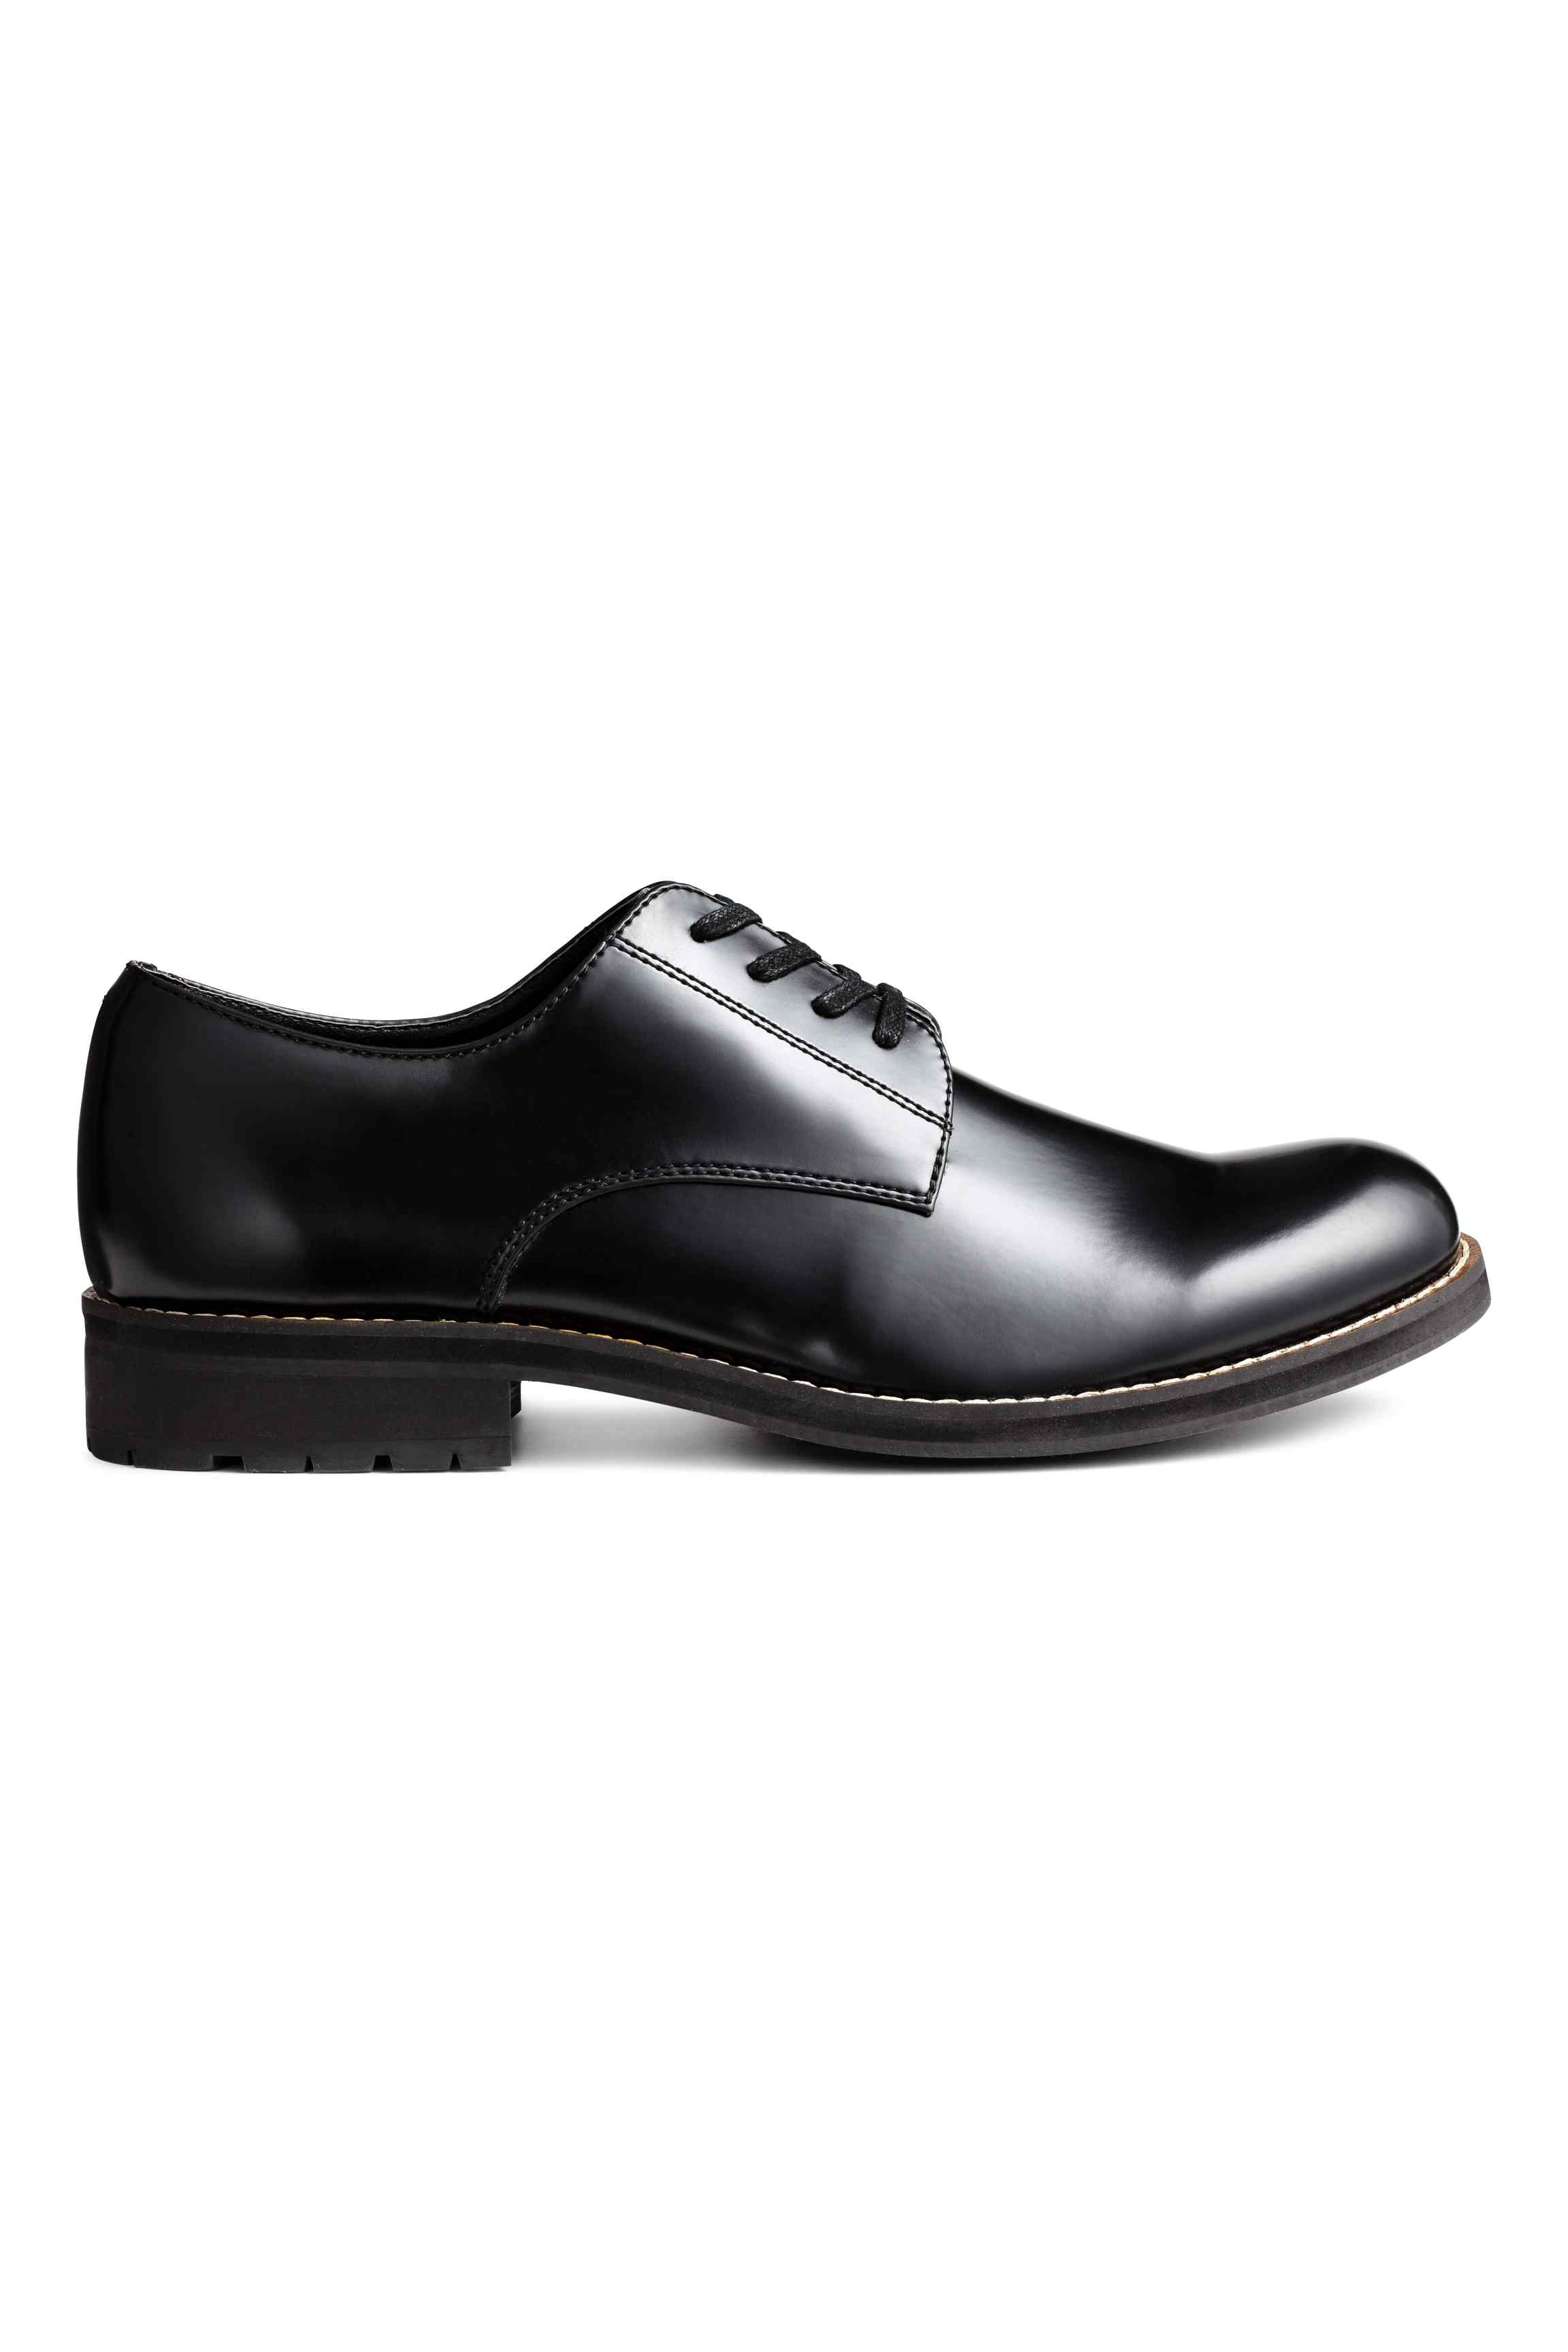 Derby shoes with chunky soles, £39.99 ( hm.com )